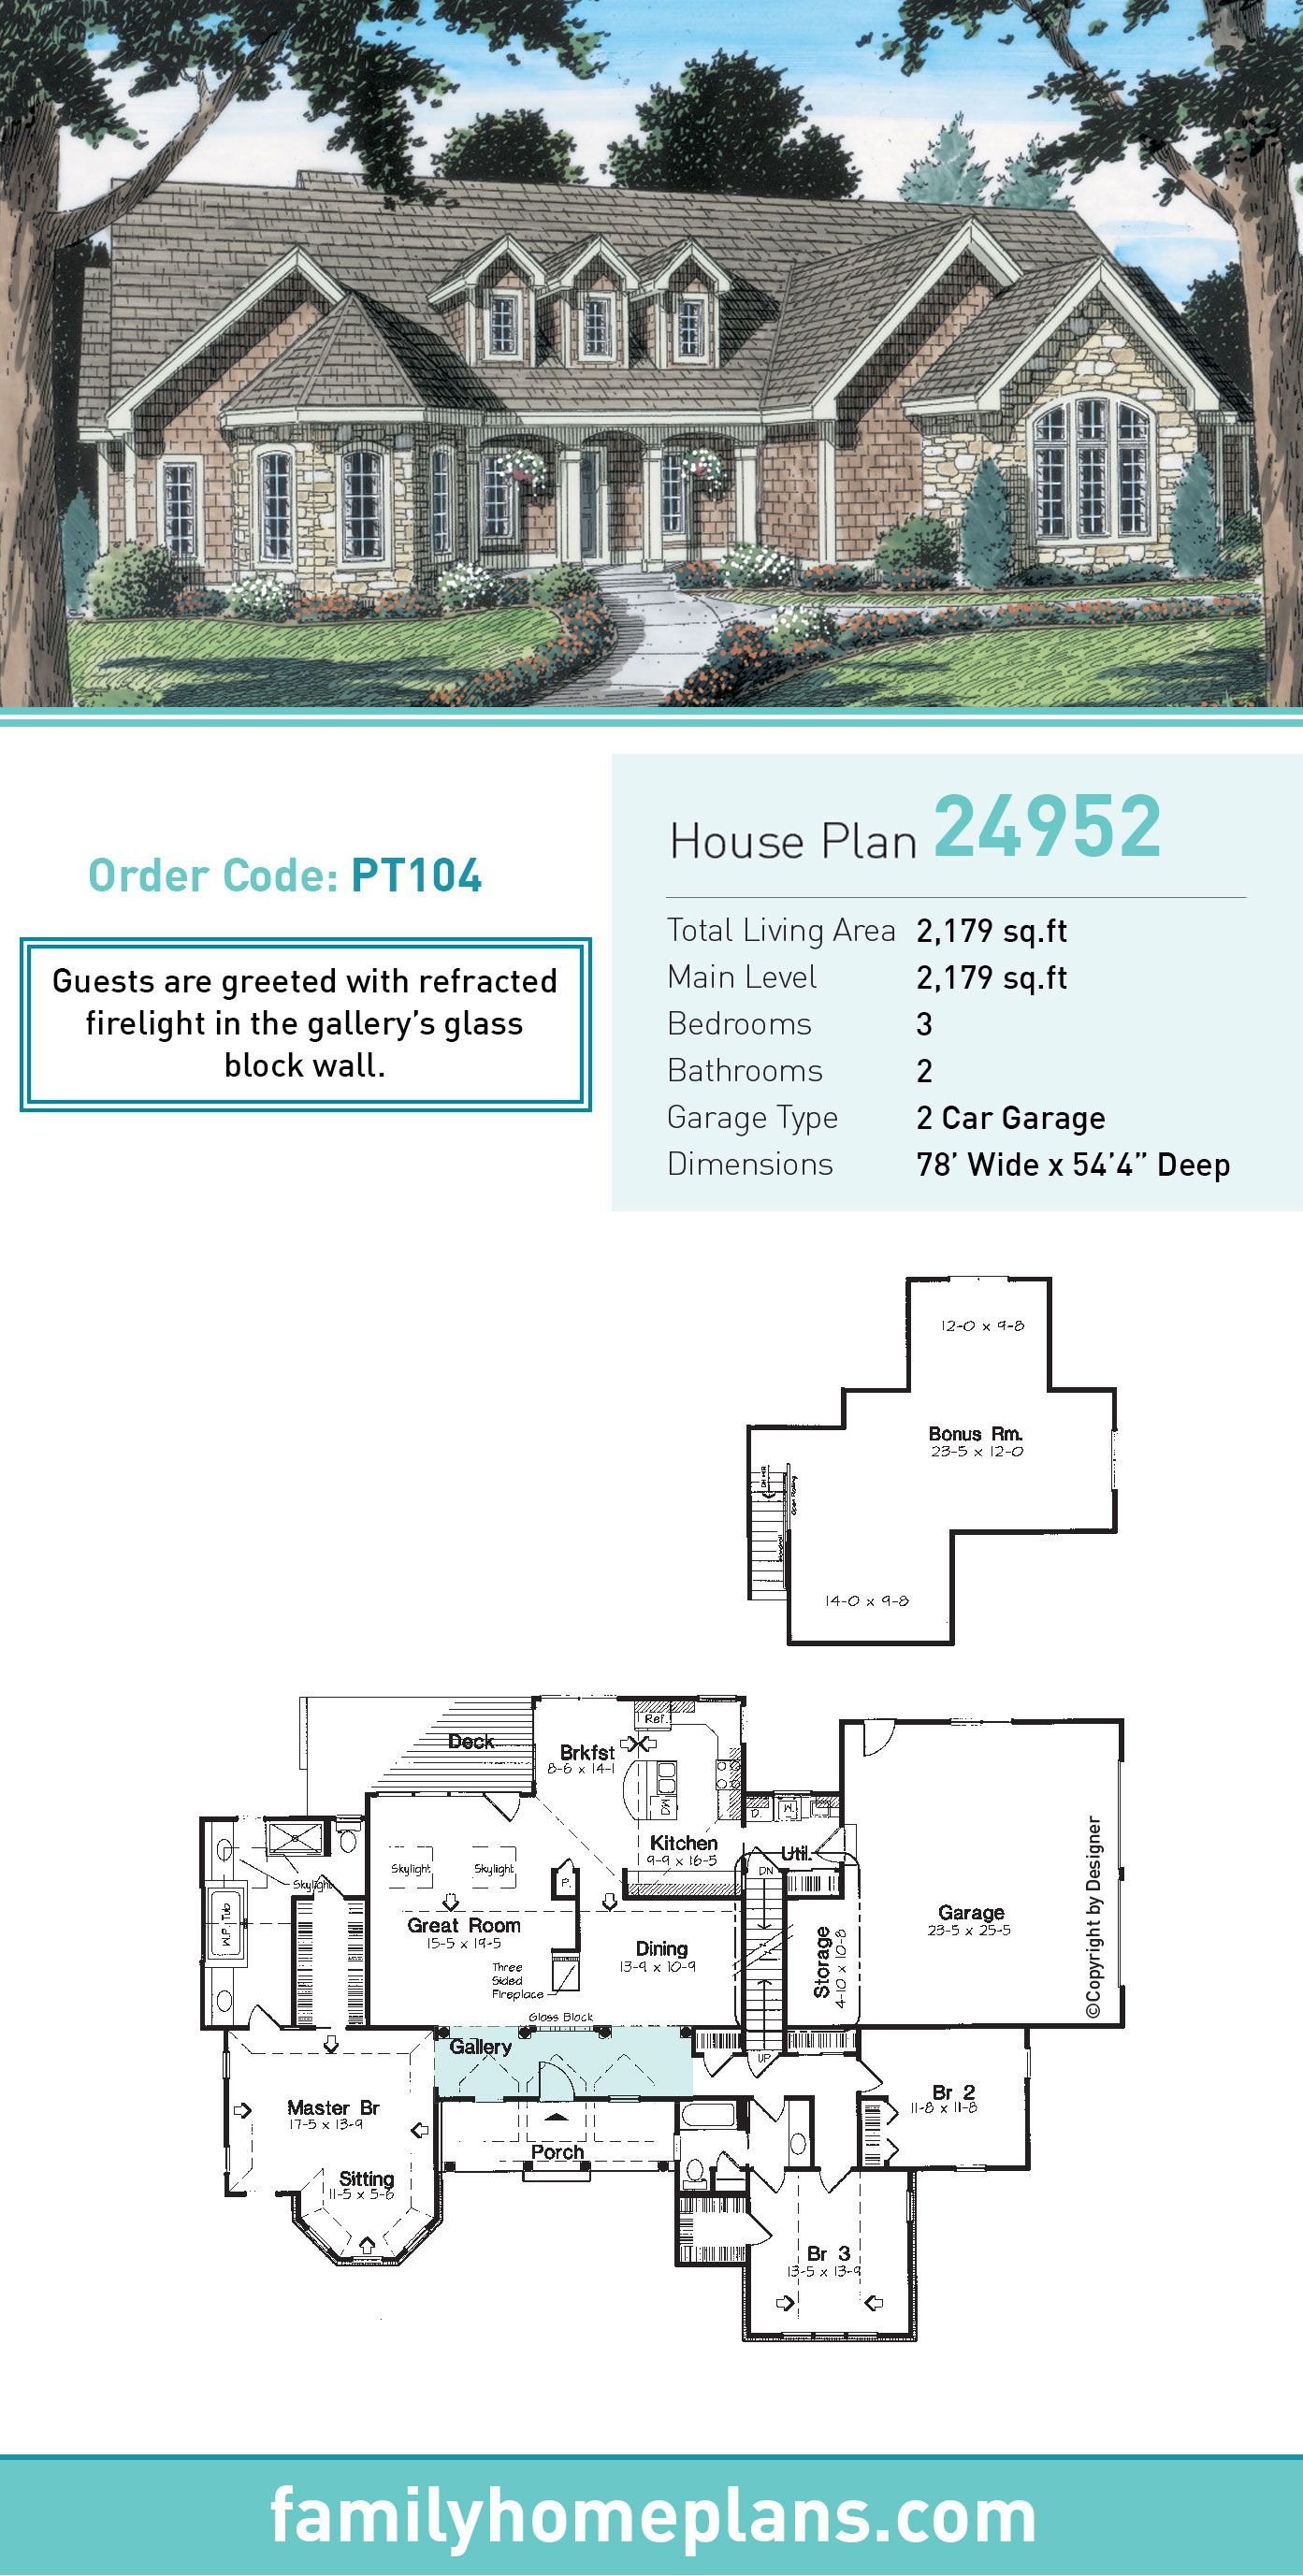 Easy to Build House Plans Awesome Traditional Style House Plan with 3 Bed 2 Bath 2 Car